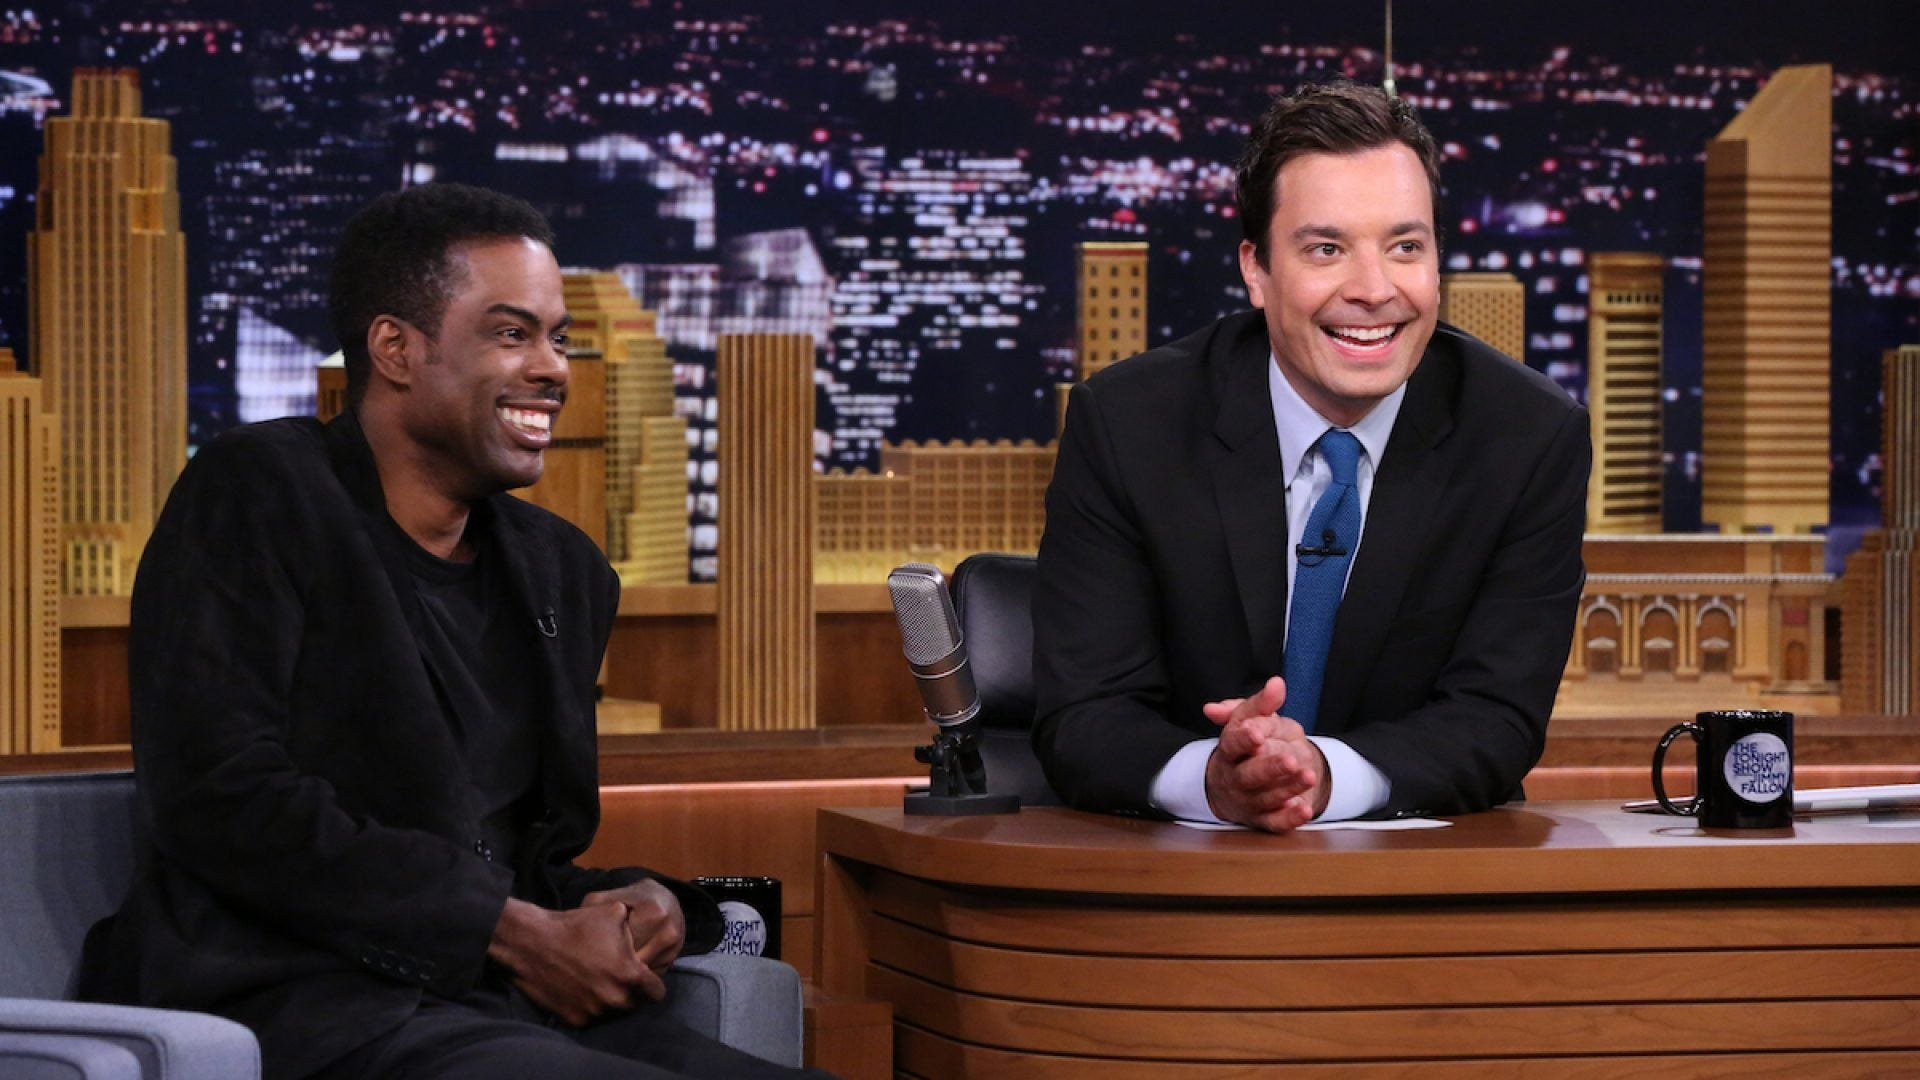 Jimmy Fallon Apologizes For Using Blackface To Impersonate Chris Rock